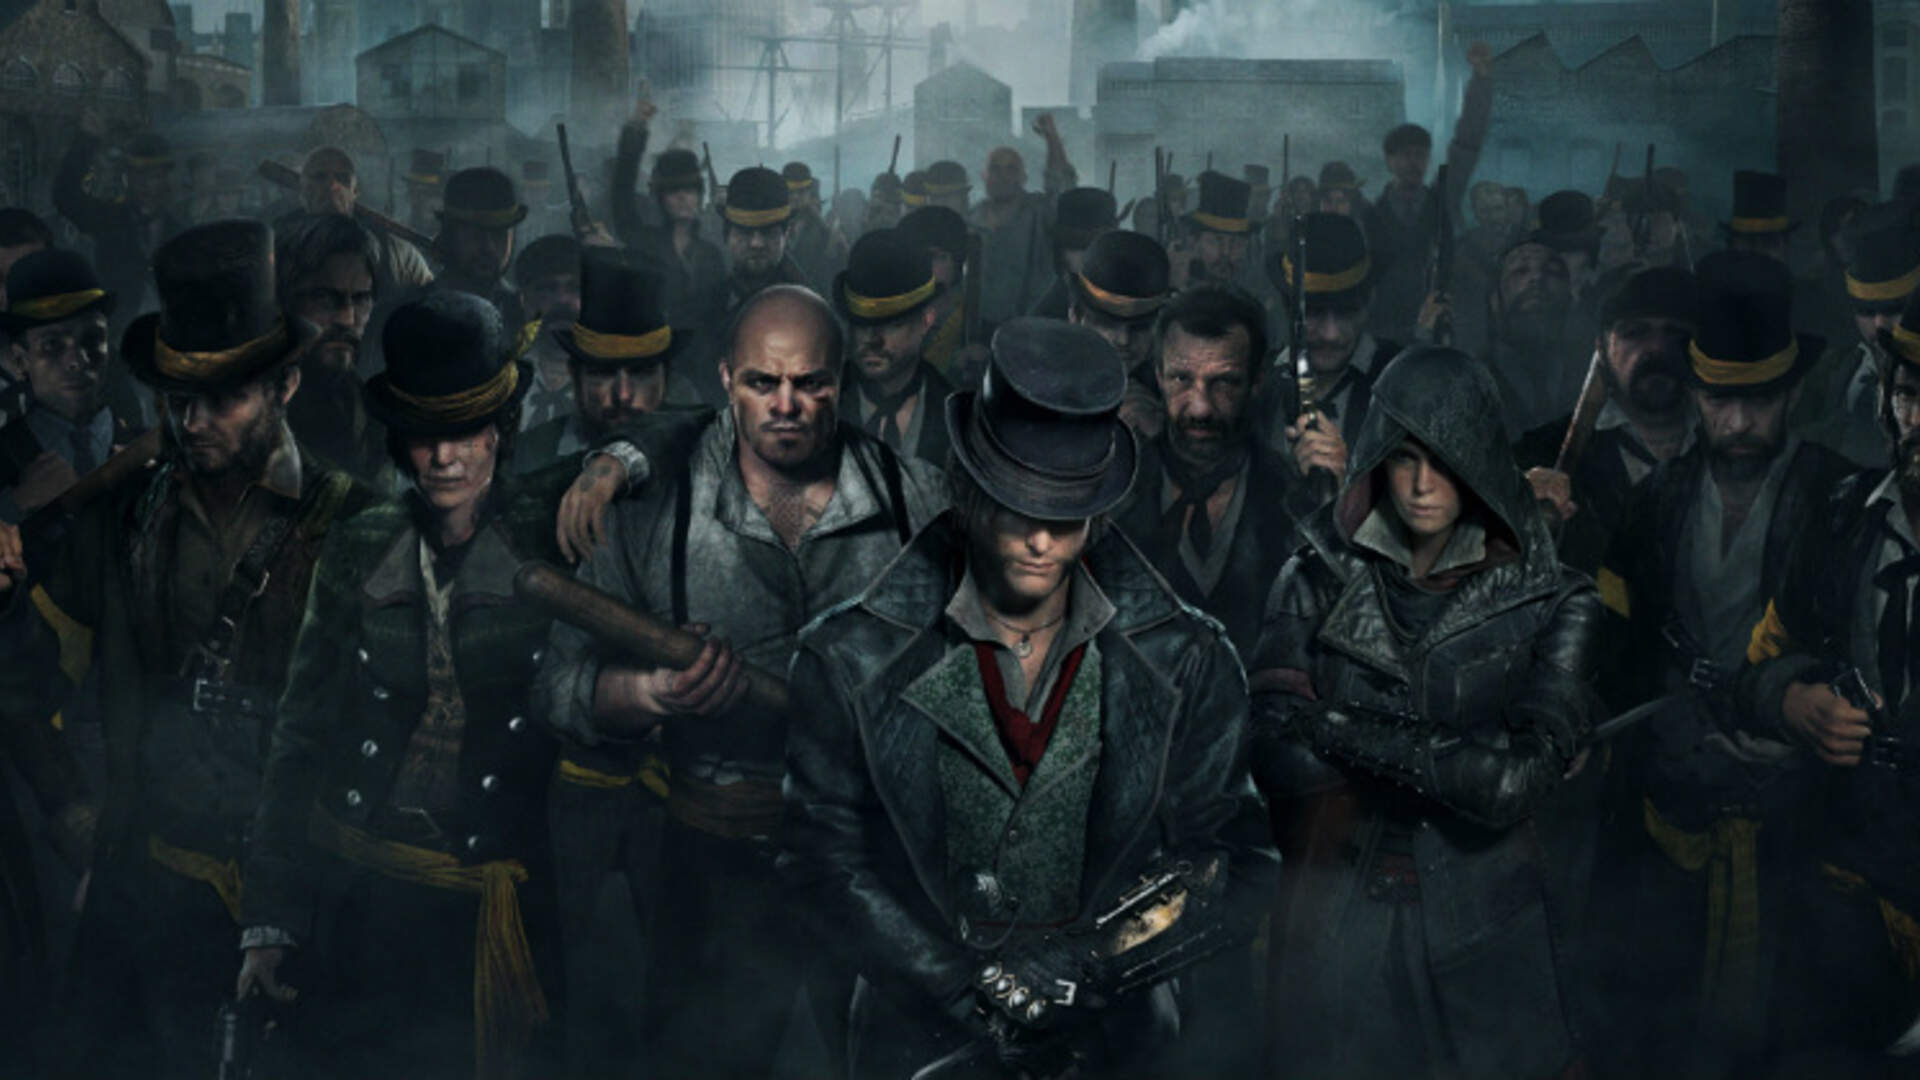 Assassin's Creed Syndicate: Searching for the Enlightenment